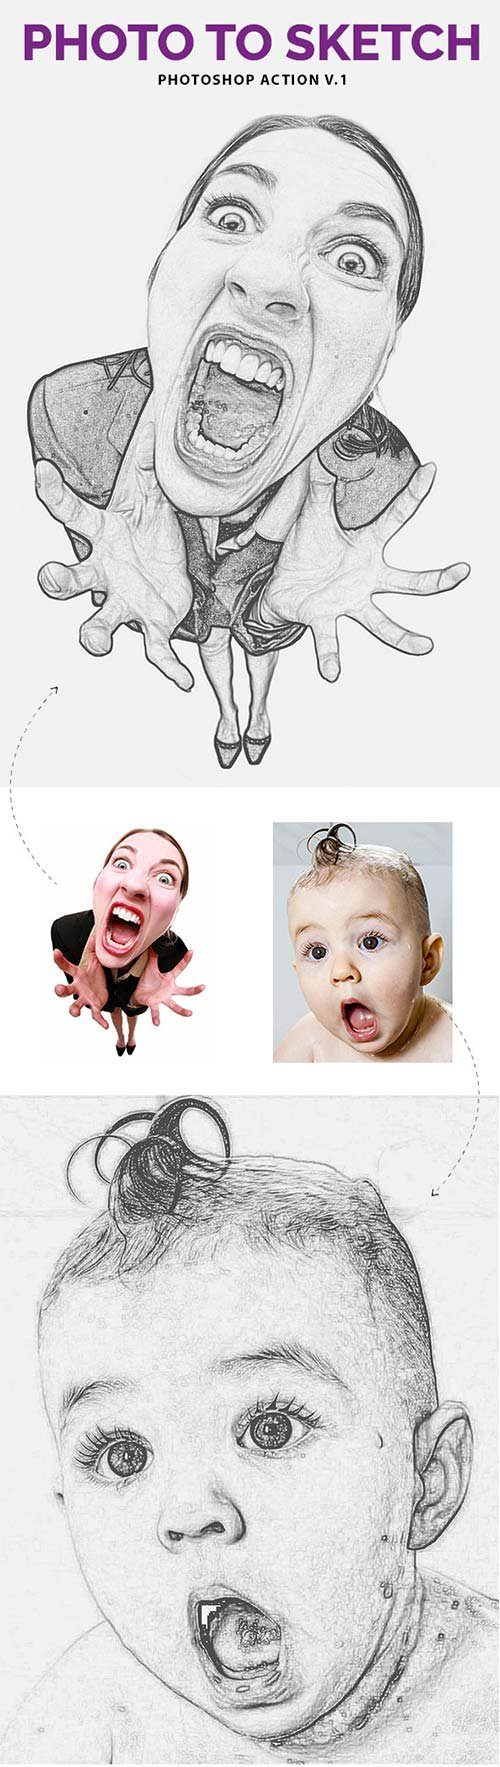 GraphicRiver Photo to Sketch V.1 - Photoshop Action